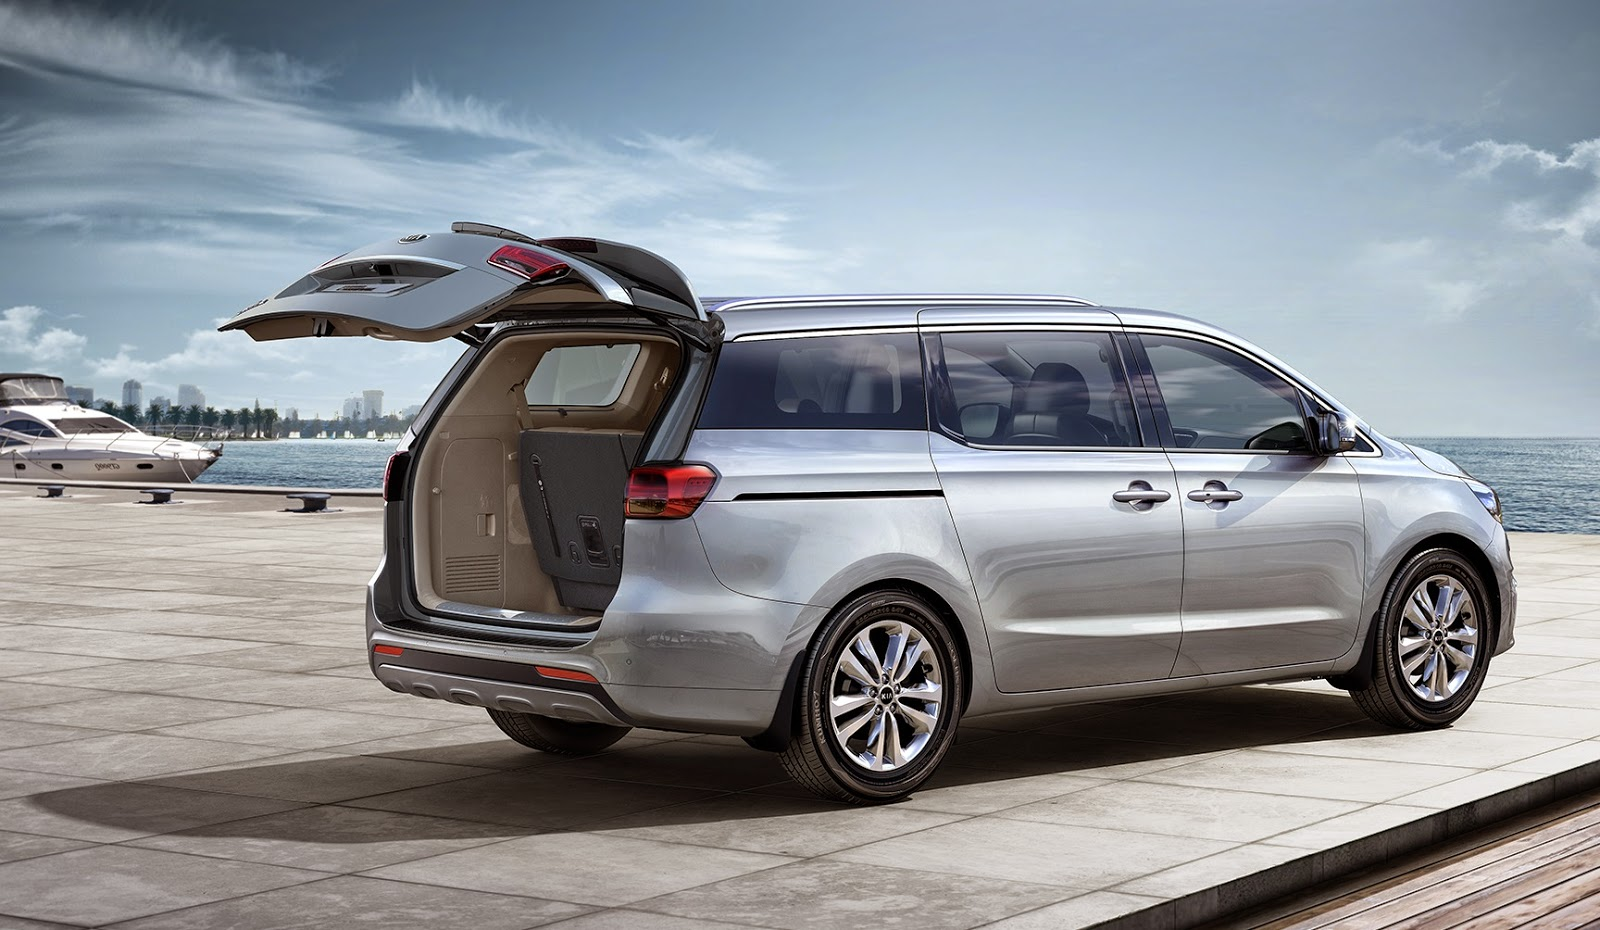 A Review of the All-New 2015 Kia Grand Carnival